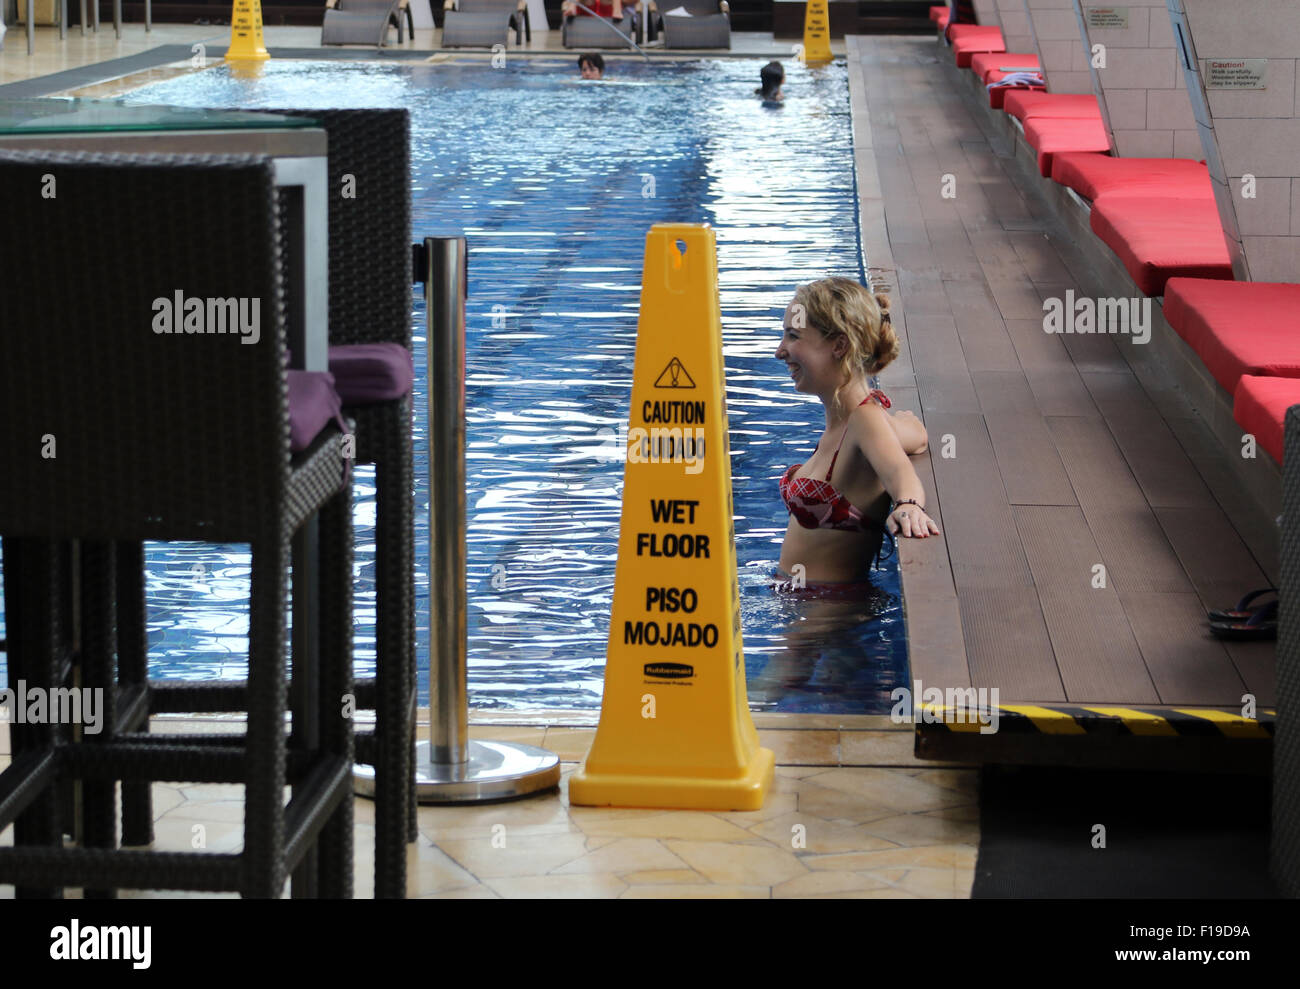 Wet Floor Health Safety Sign Next To Swimming Pool Stock Photo Royalty Free Image 86874518 Alamy